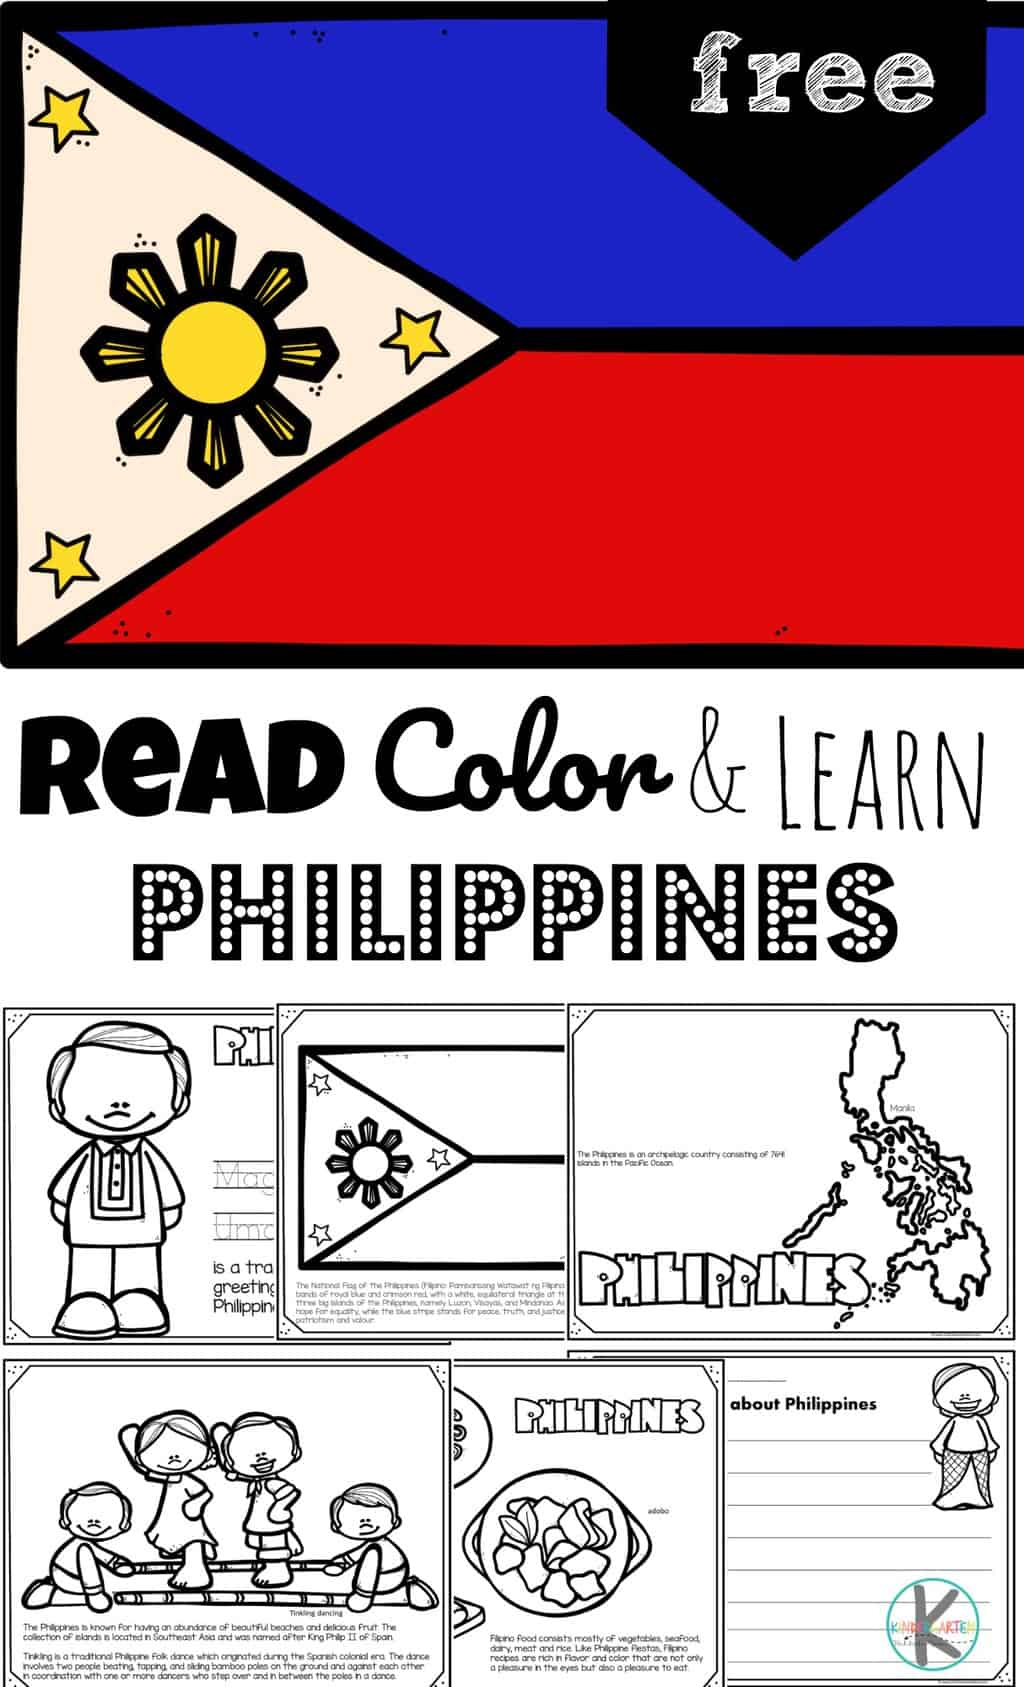 Free Read Color And Learn About The Philippines